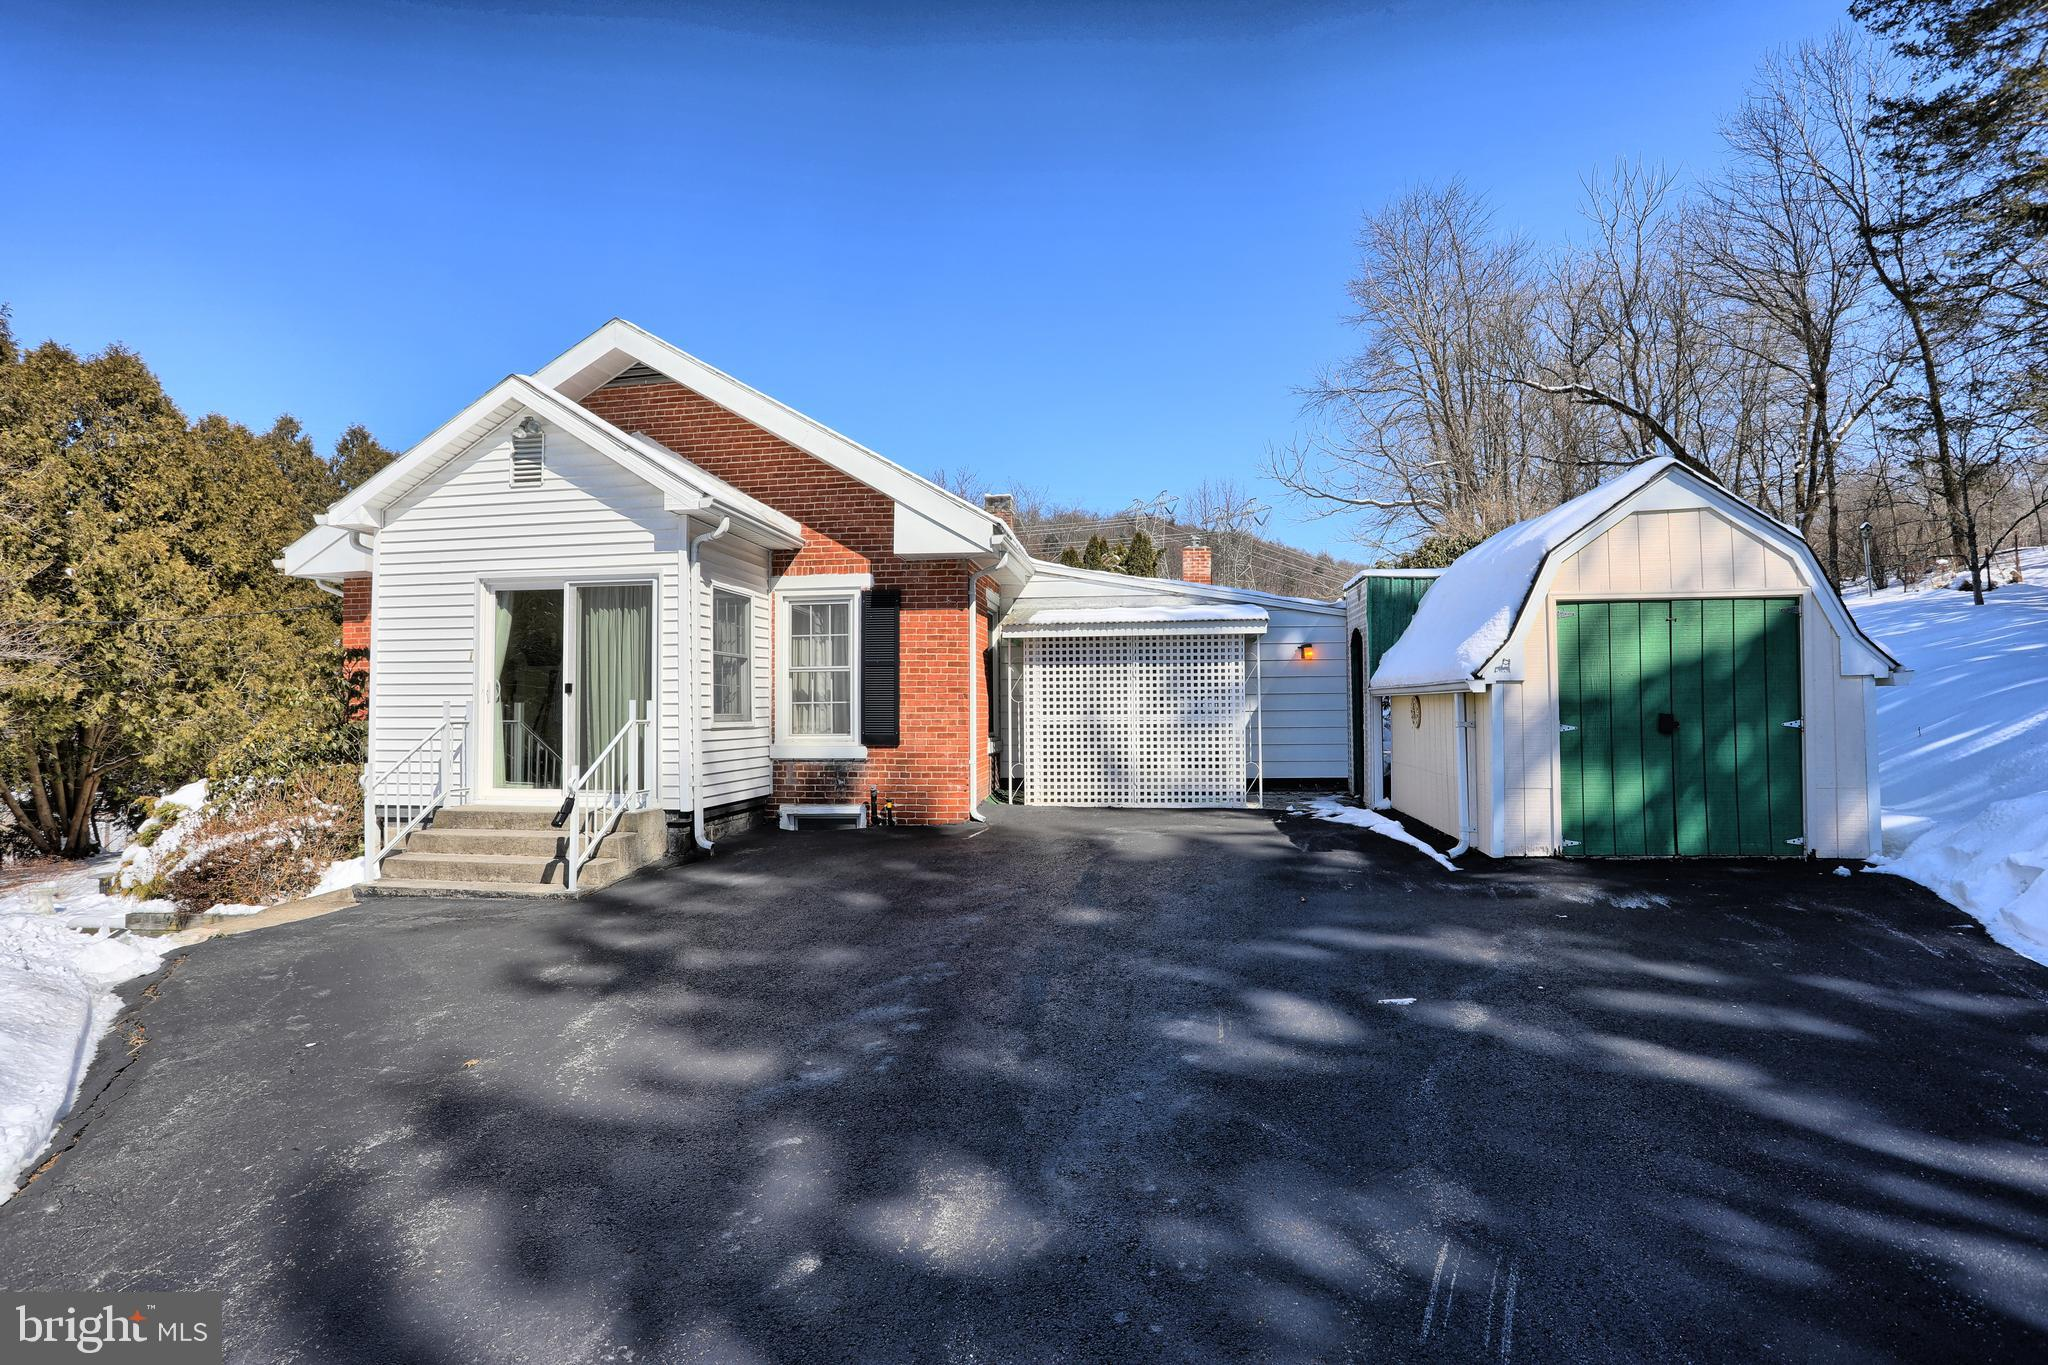 1807 COLD STORAGE ROAD, NEW BLOOMFIELD, PA 17068